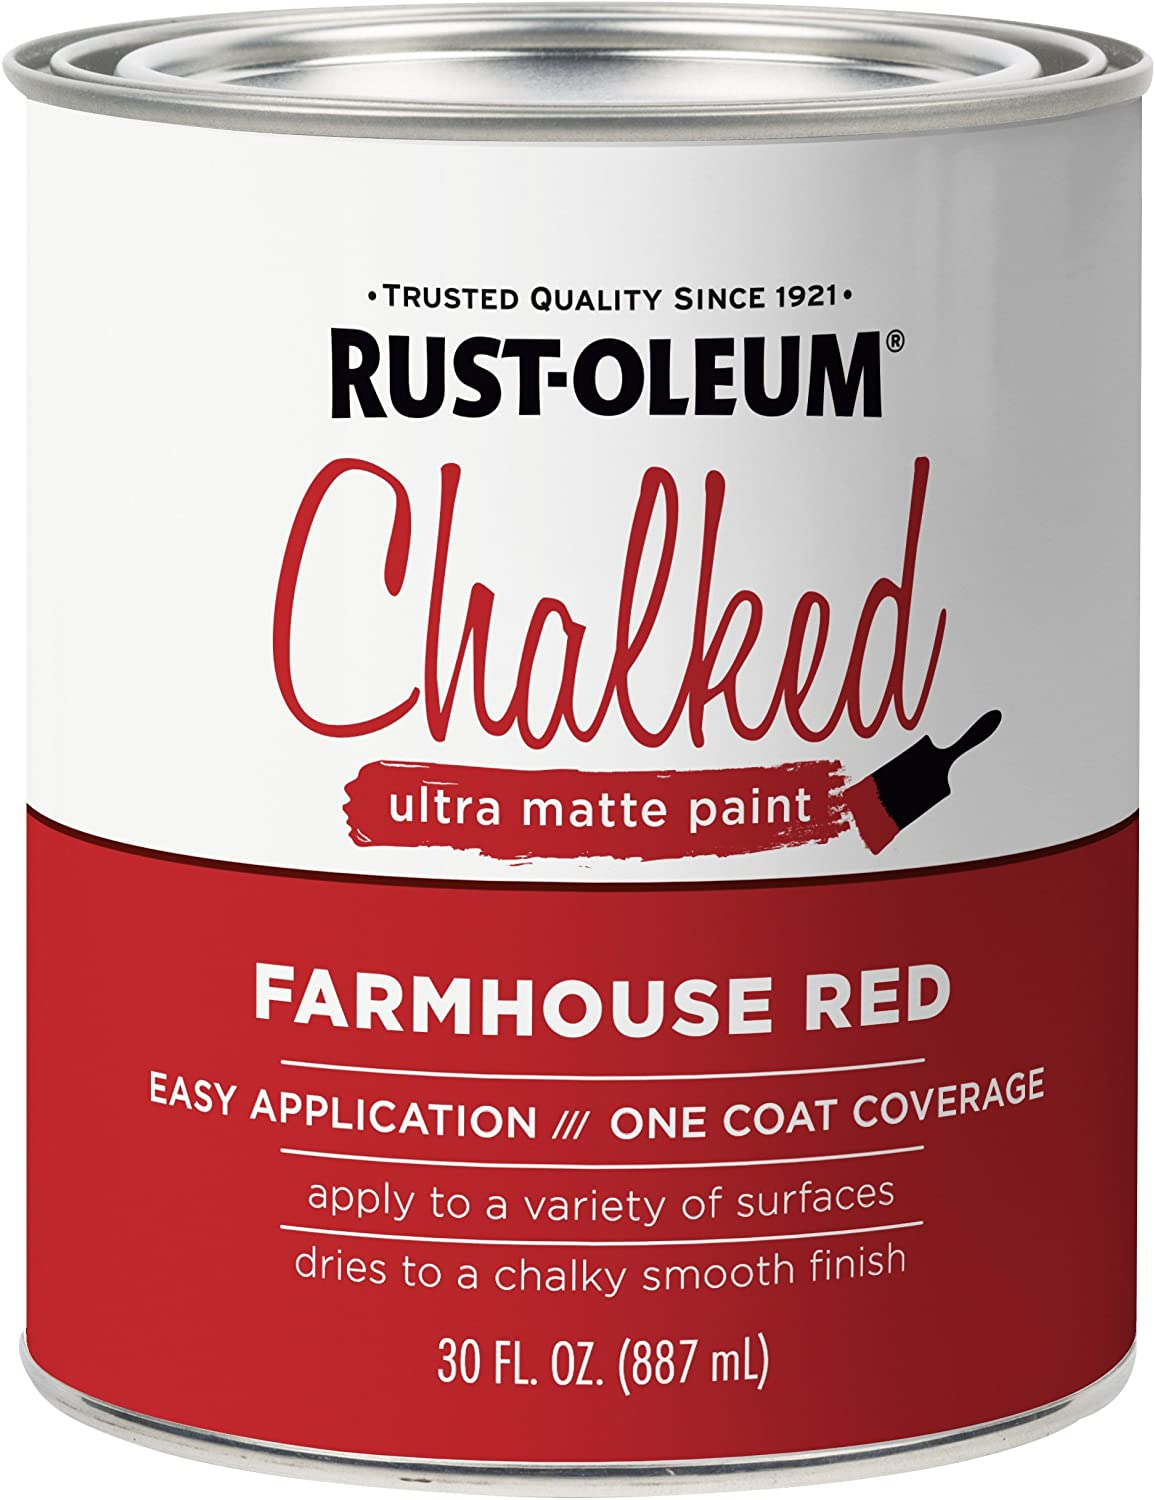 Rust-Oleum 329211 Ultra Matte Interior Chalked Paint 30 oz, Farmhouse Red